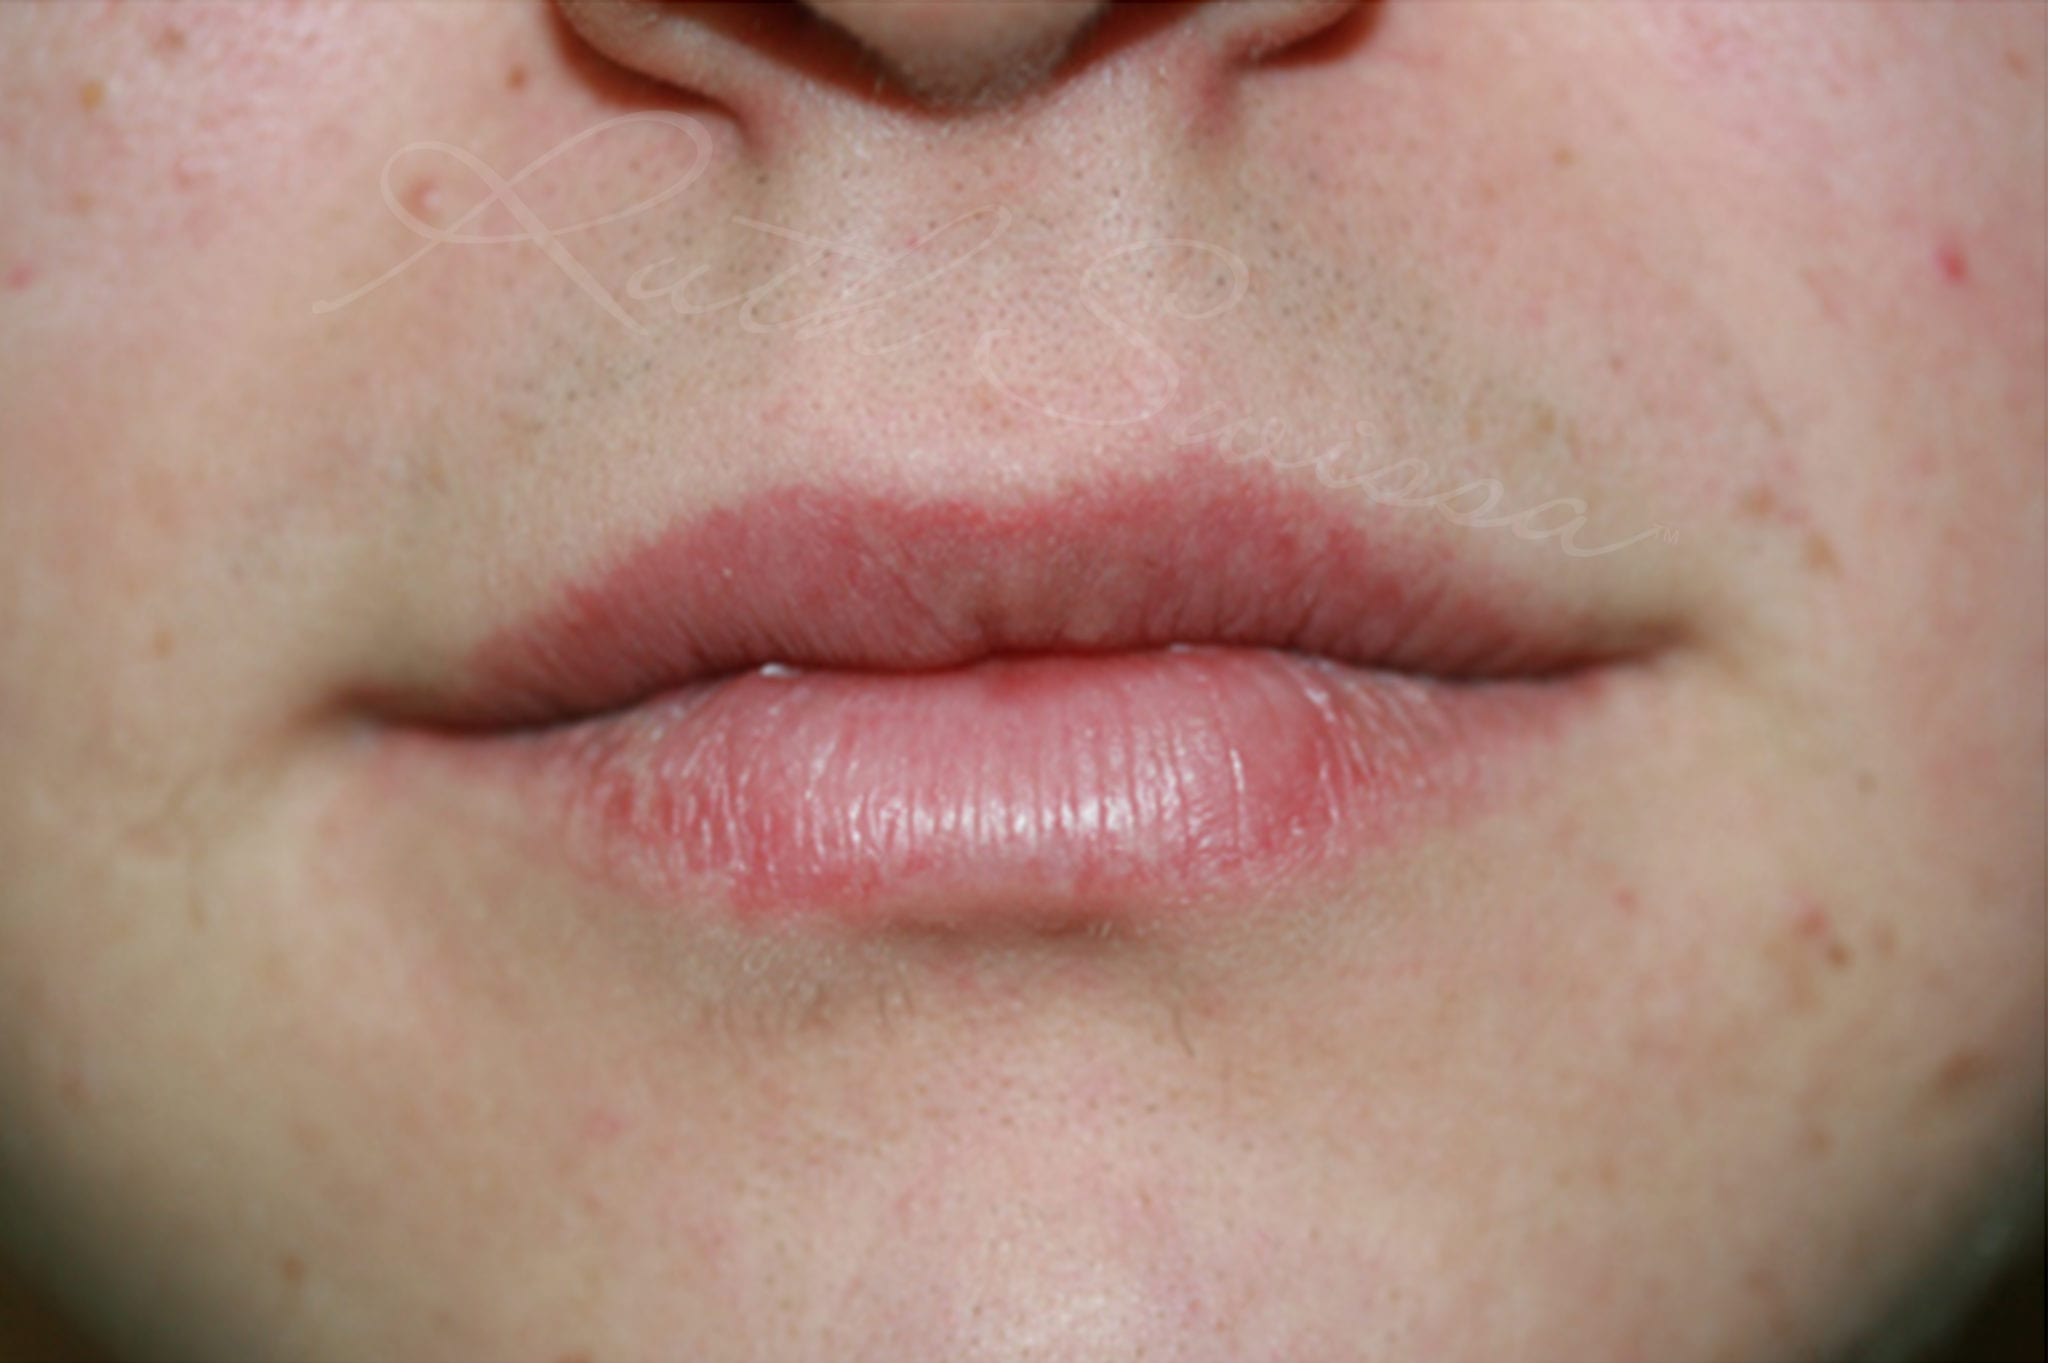 Lip discoloration ruth swissa after permanent lipstick